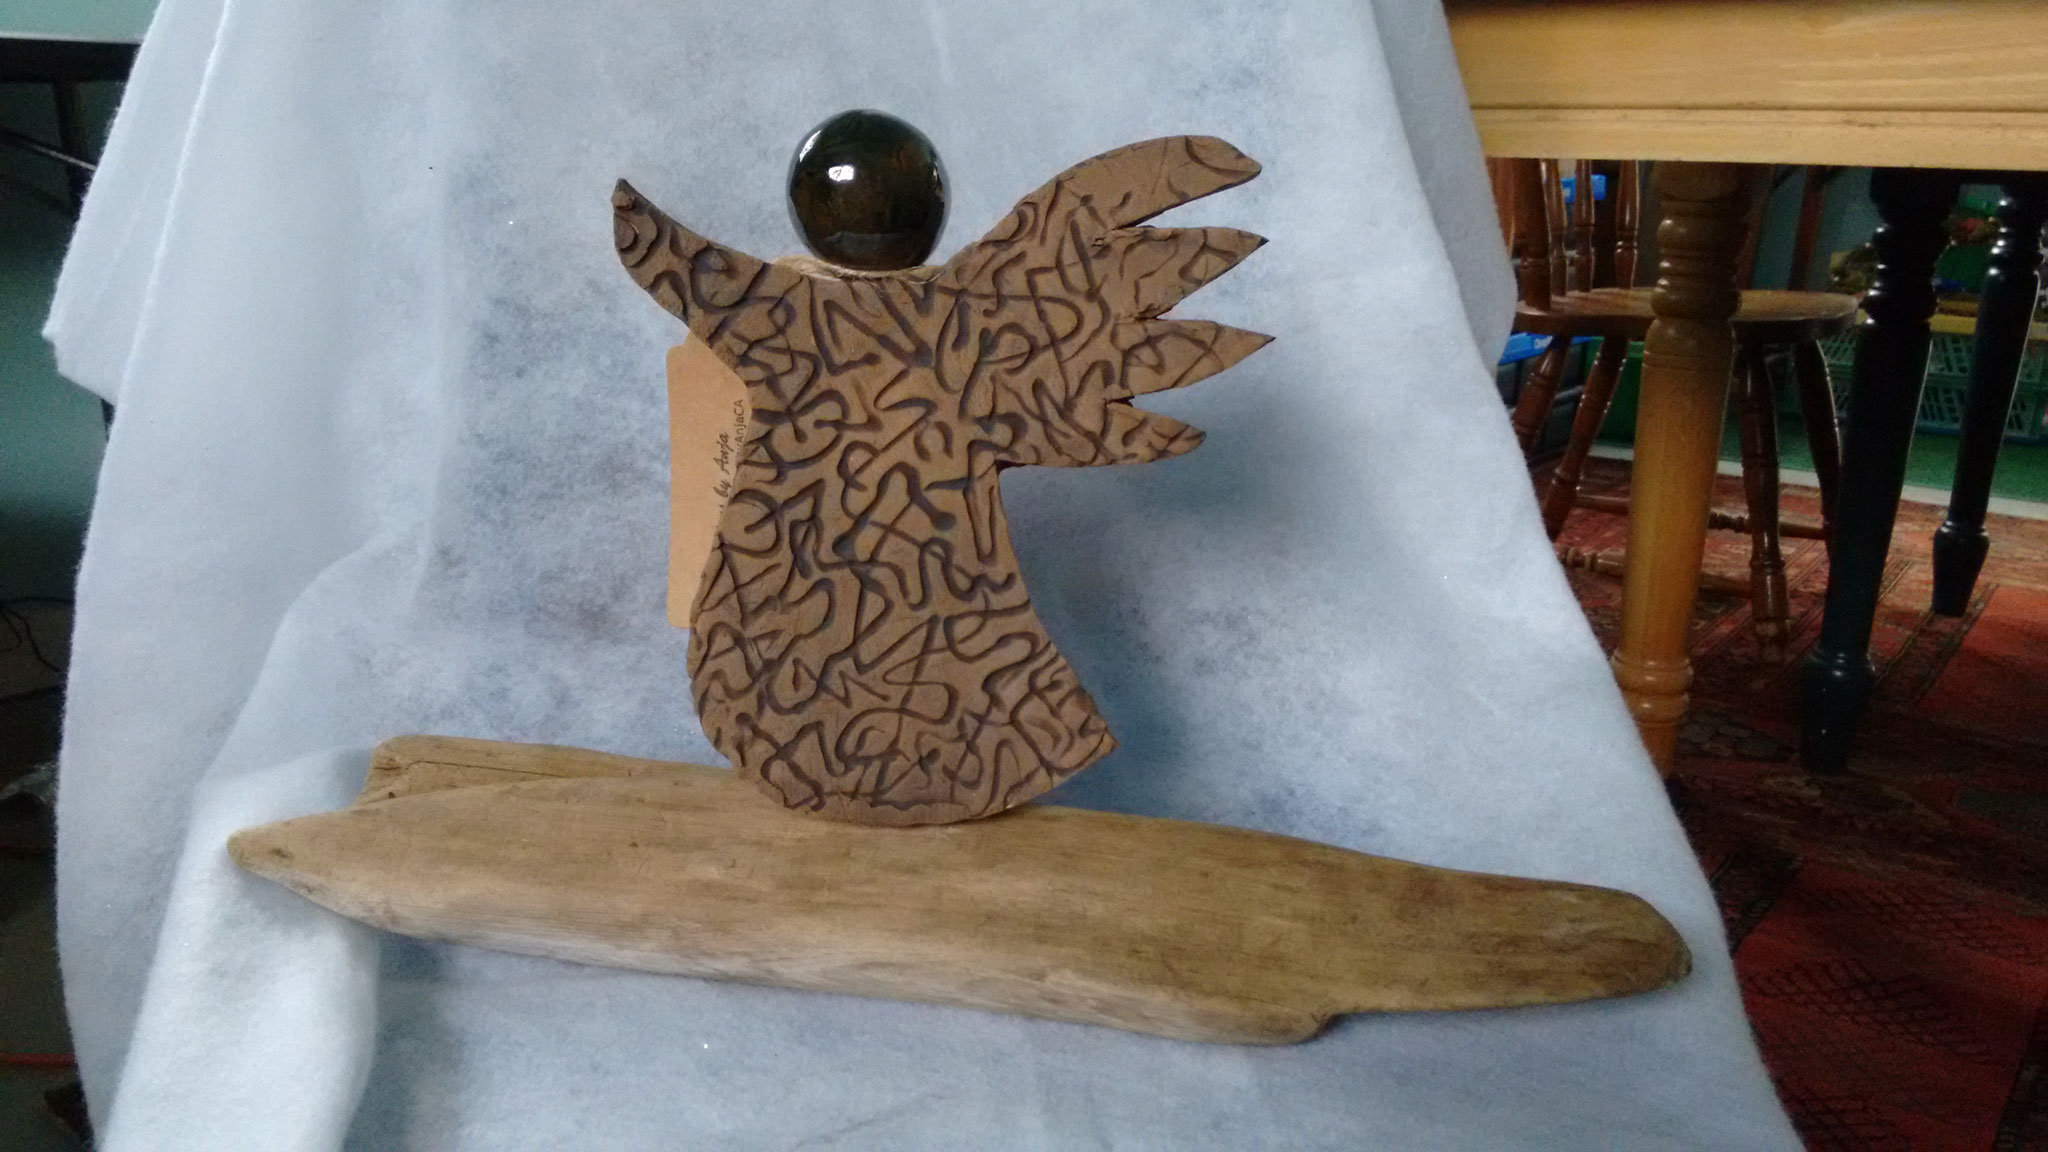 SOLD. Rustic Angel on Driftwood, Price $ 40.00